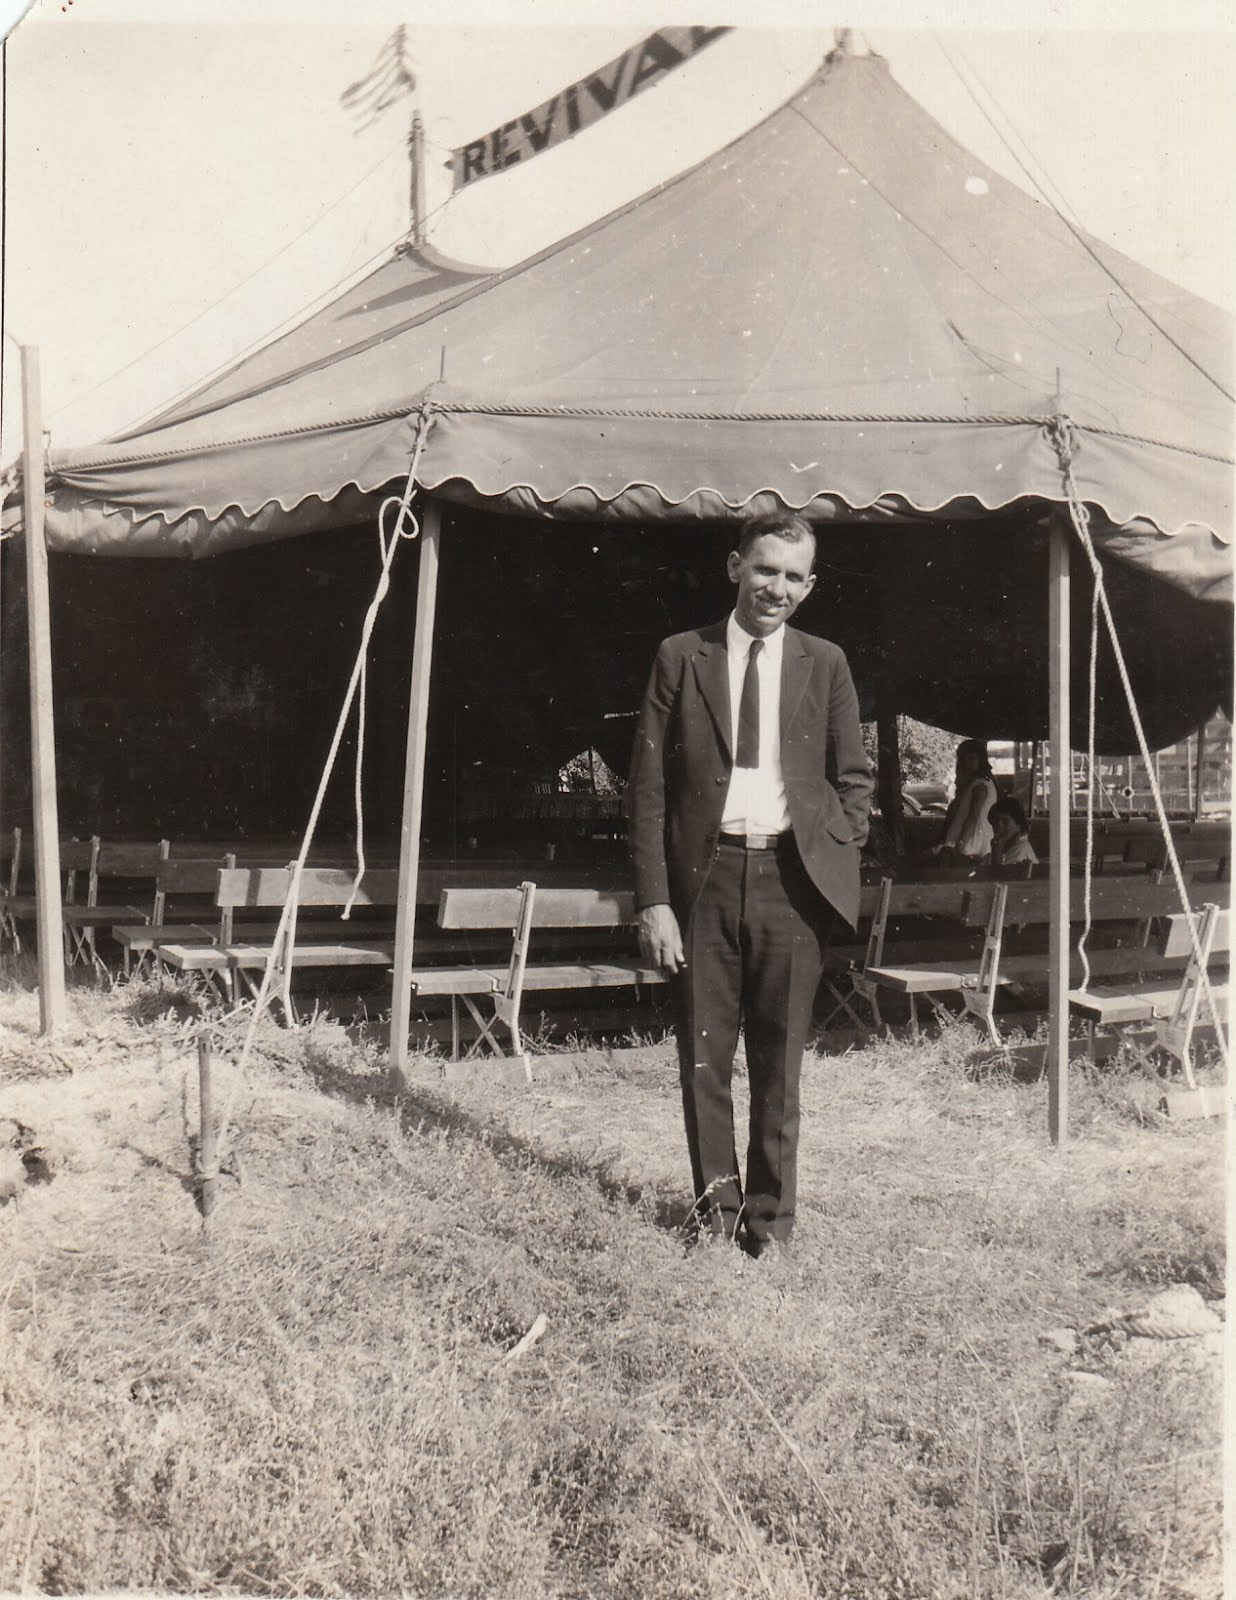 Revival Tent old time religion Snapshot collection Jim Linderman.   & old time religion by Jim Linderman: Revival Tent old time religion ...